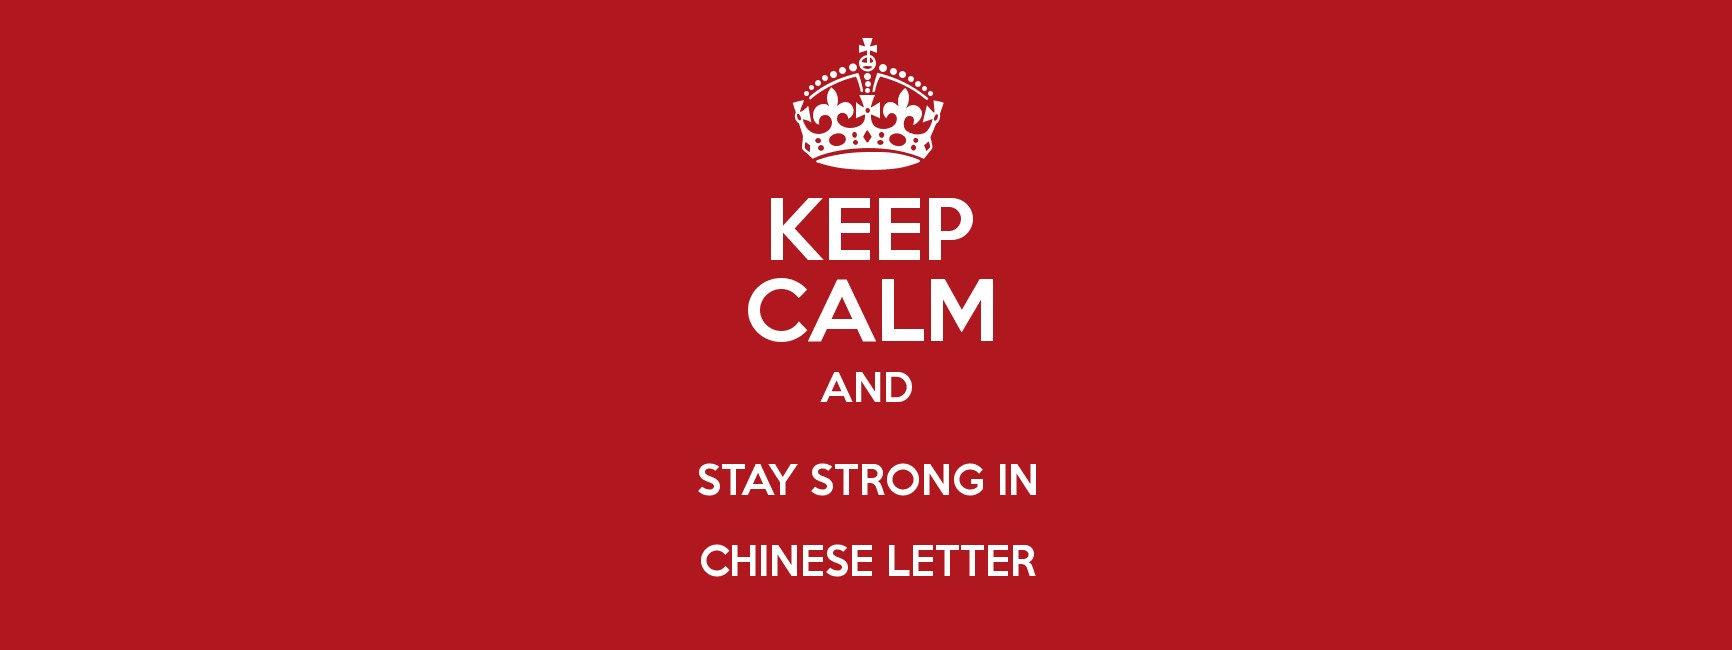 Keep Calm And Stay Strong In Chinese Letter Keep Calm And Posters